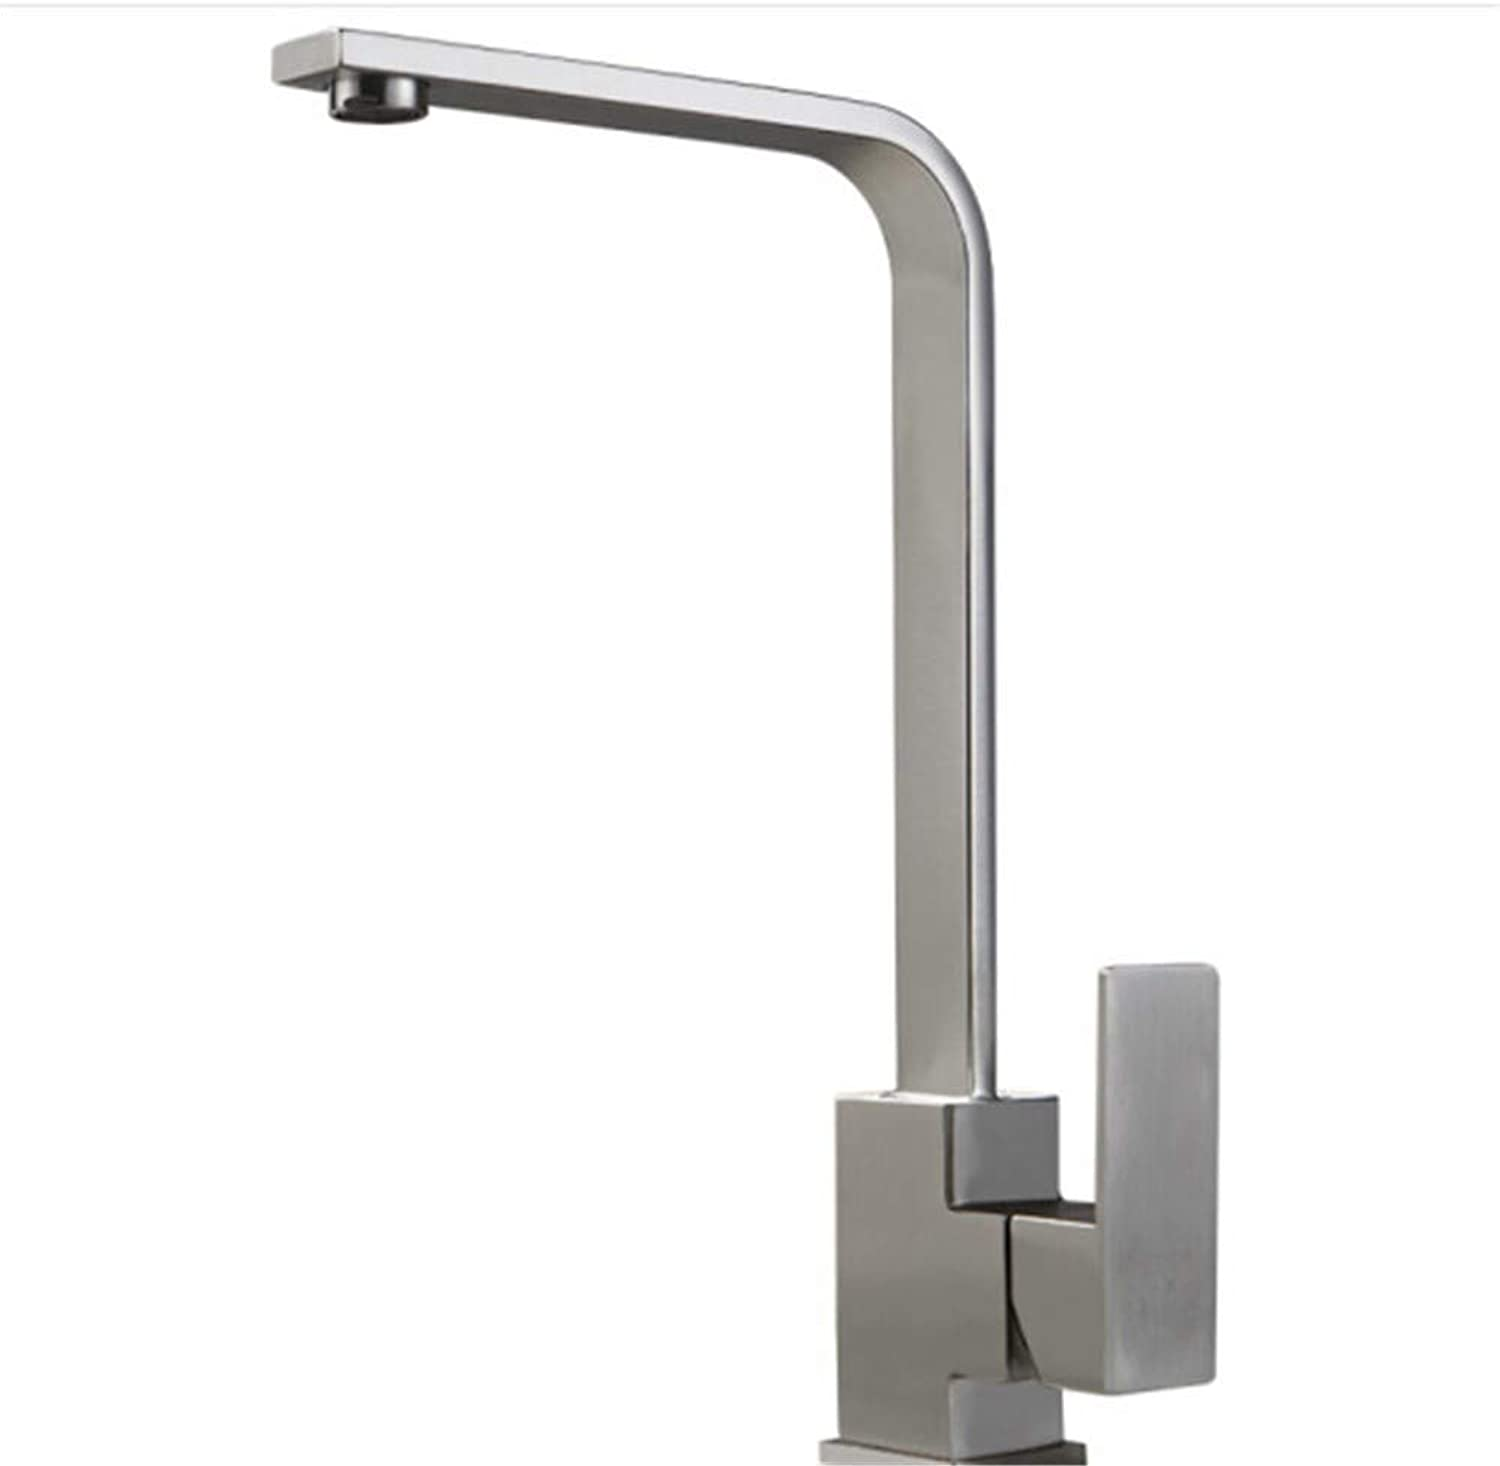 Water Tap Drinking Designer Archcool and Hot Kitchen Faucet